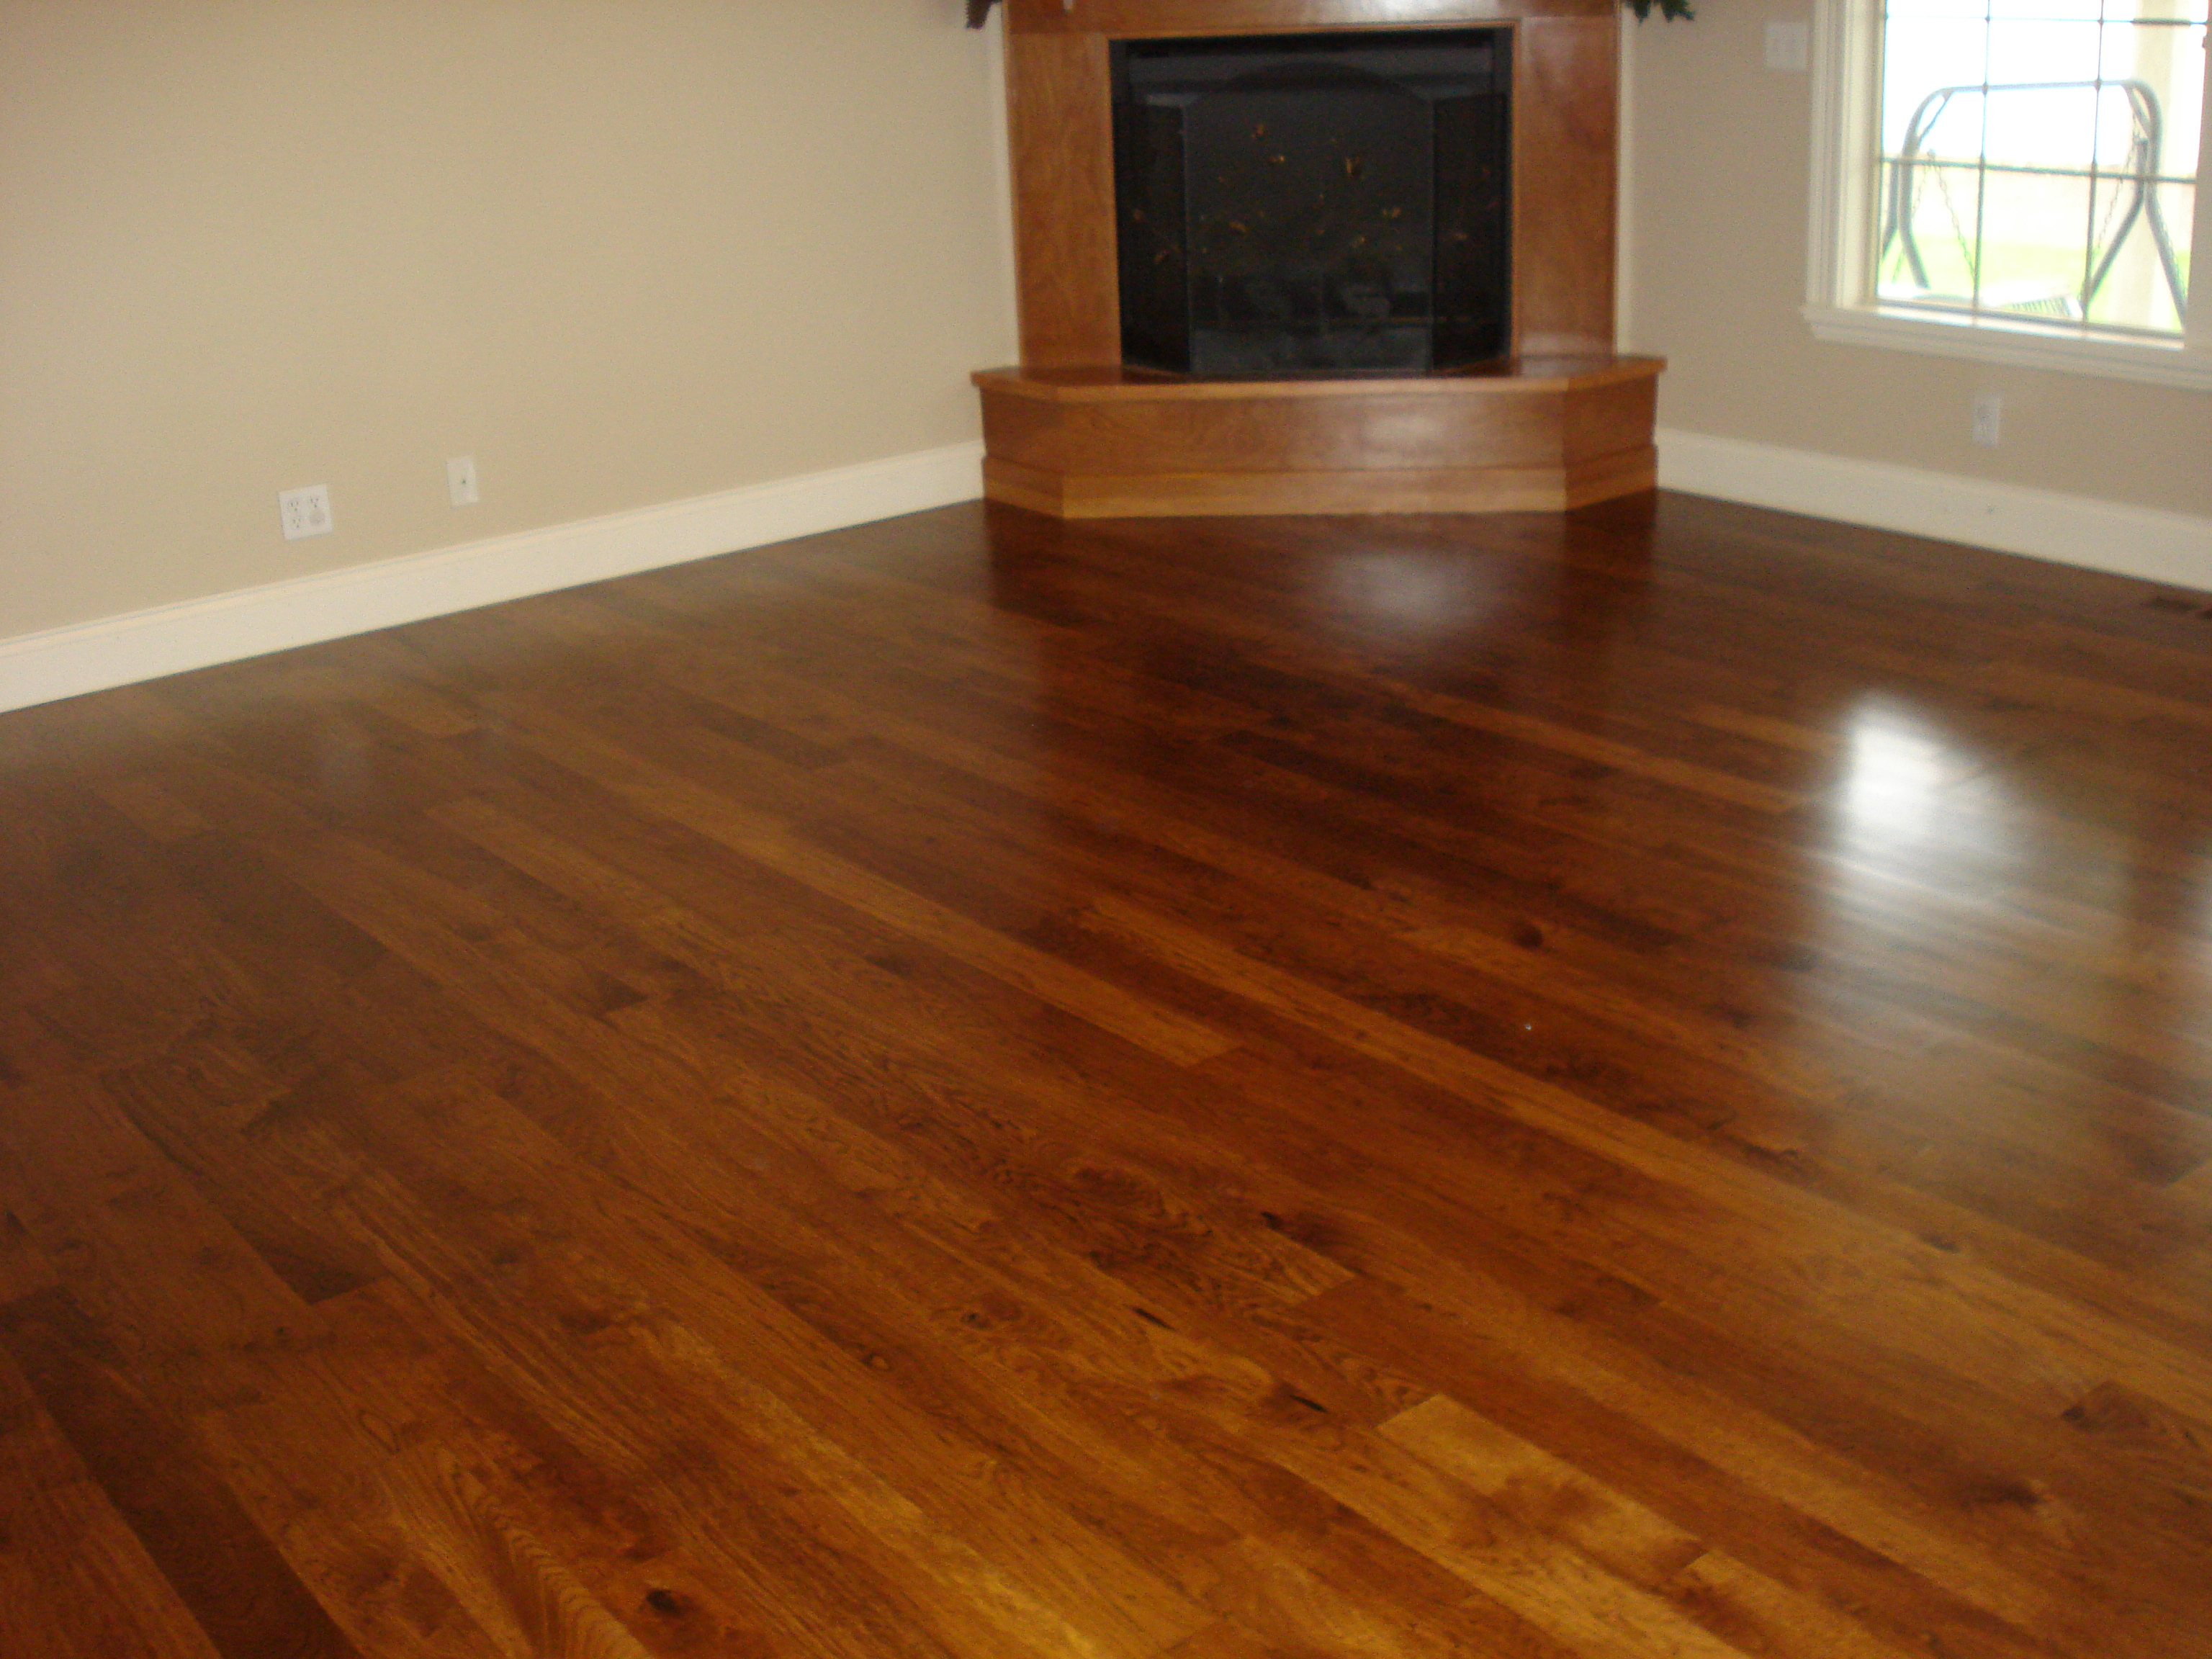 Carson s custom hardwood floors utah hardwood flooring for Ceramica para exteriores